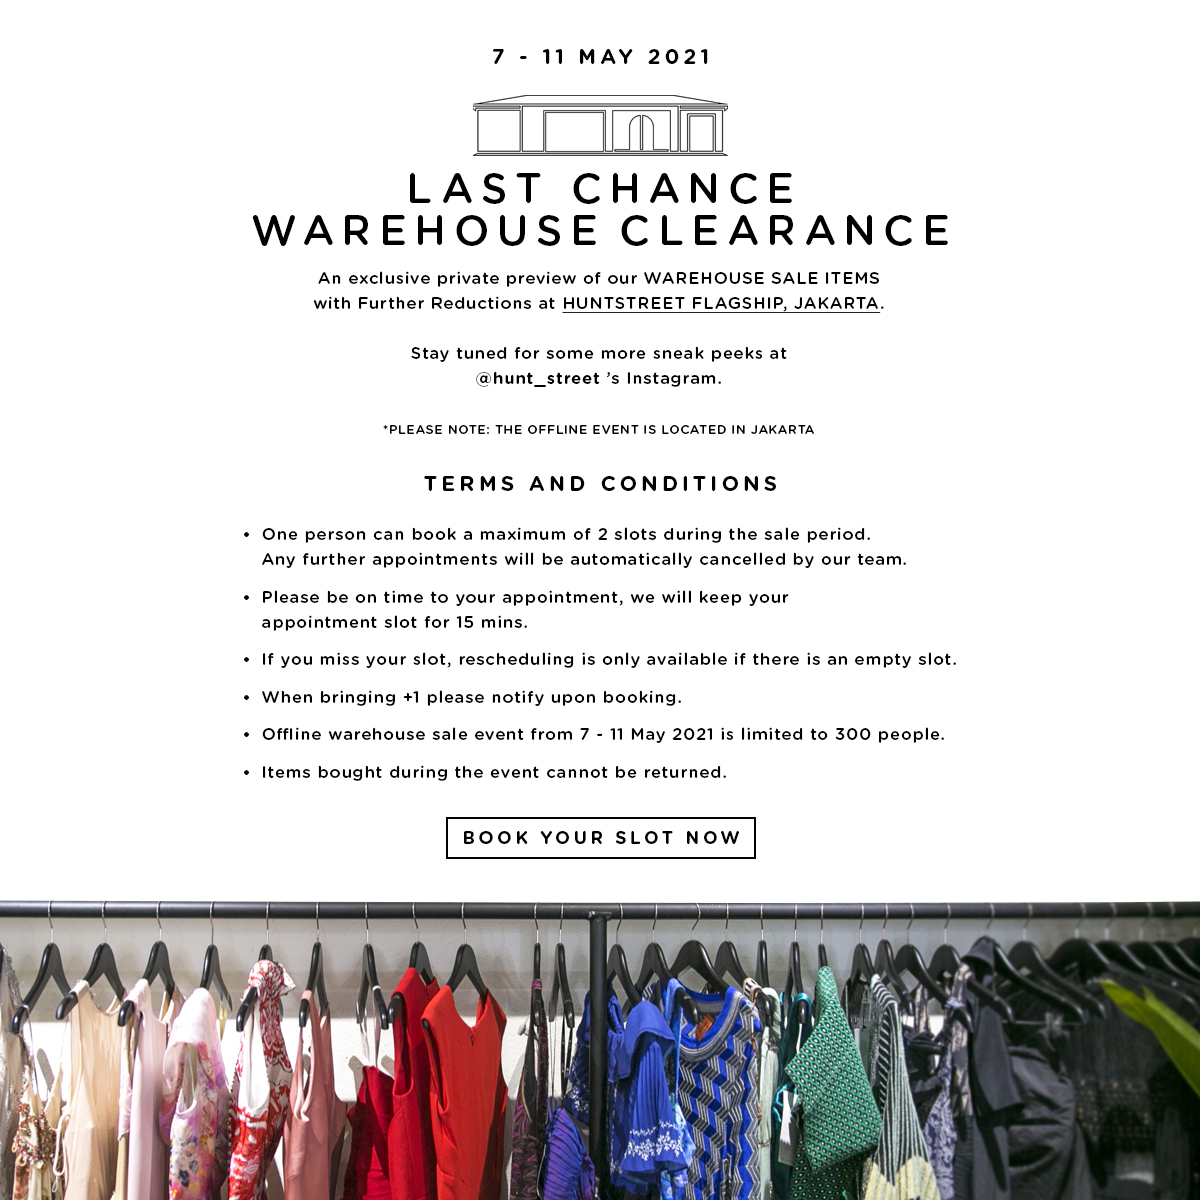 Last Chance Warehouse Clearance